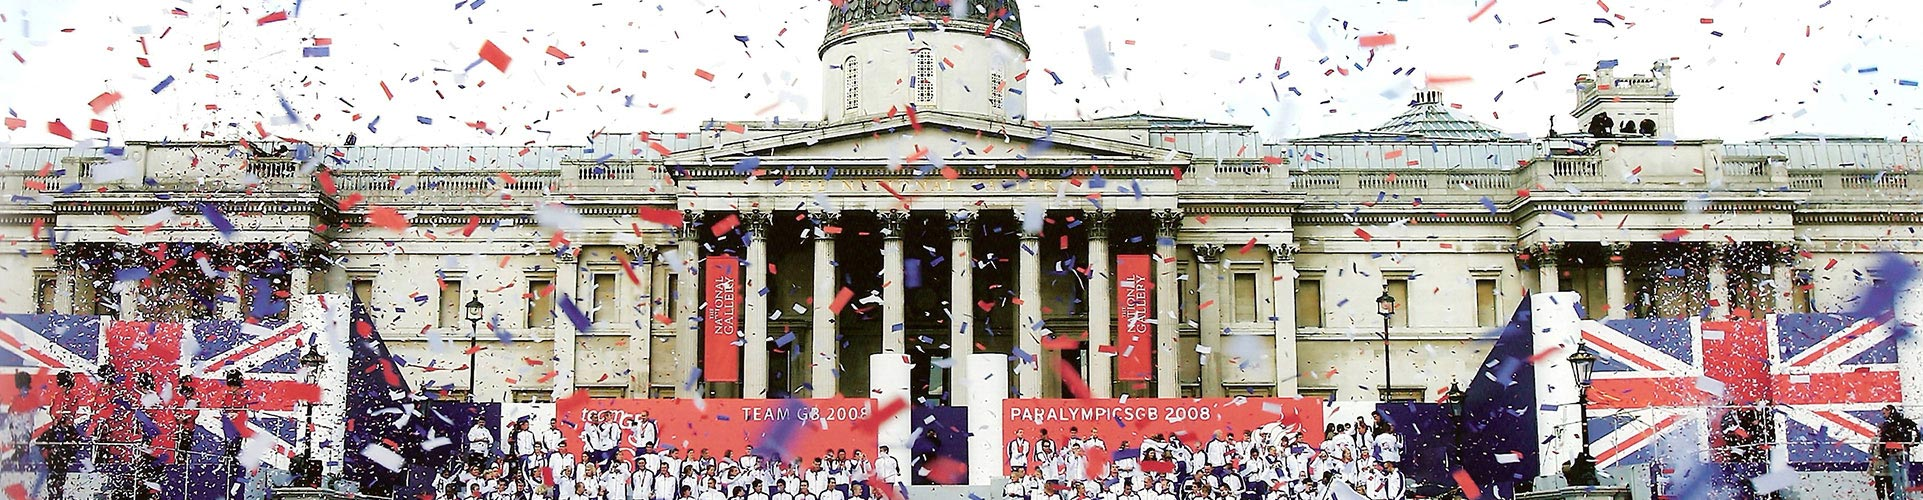 red, white and blue confetti fills Trafalgar Square